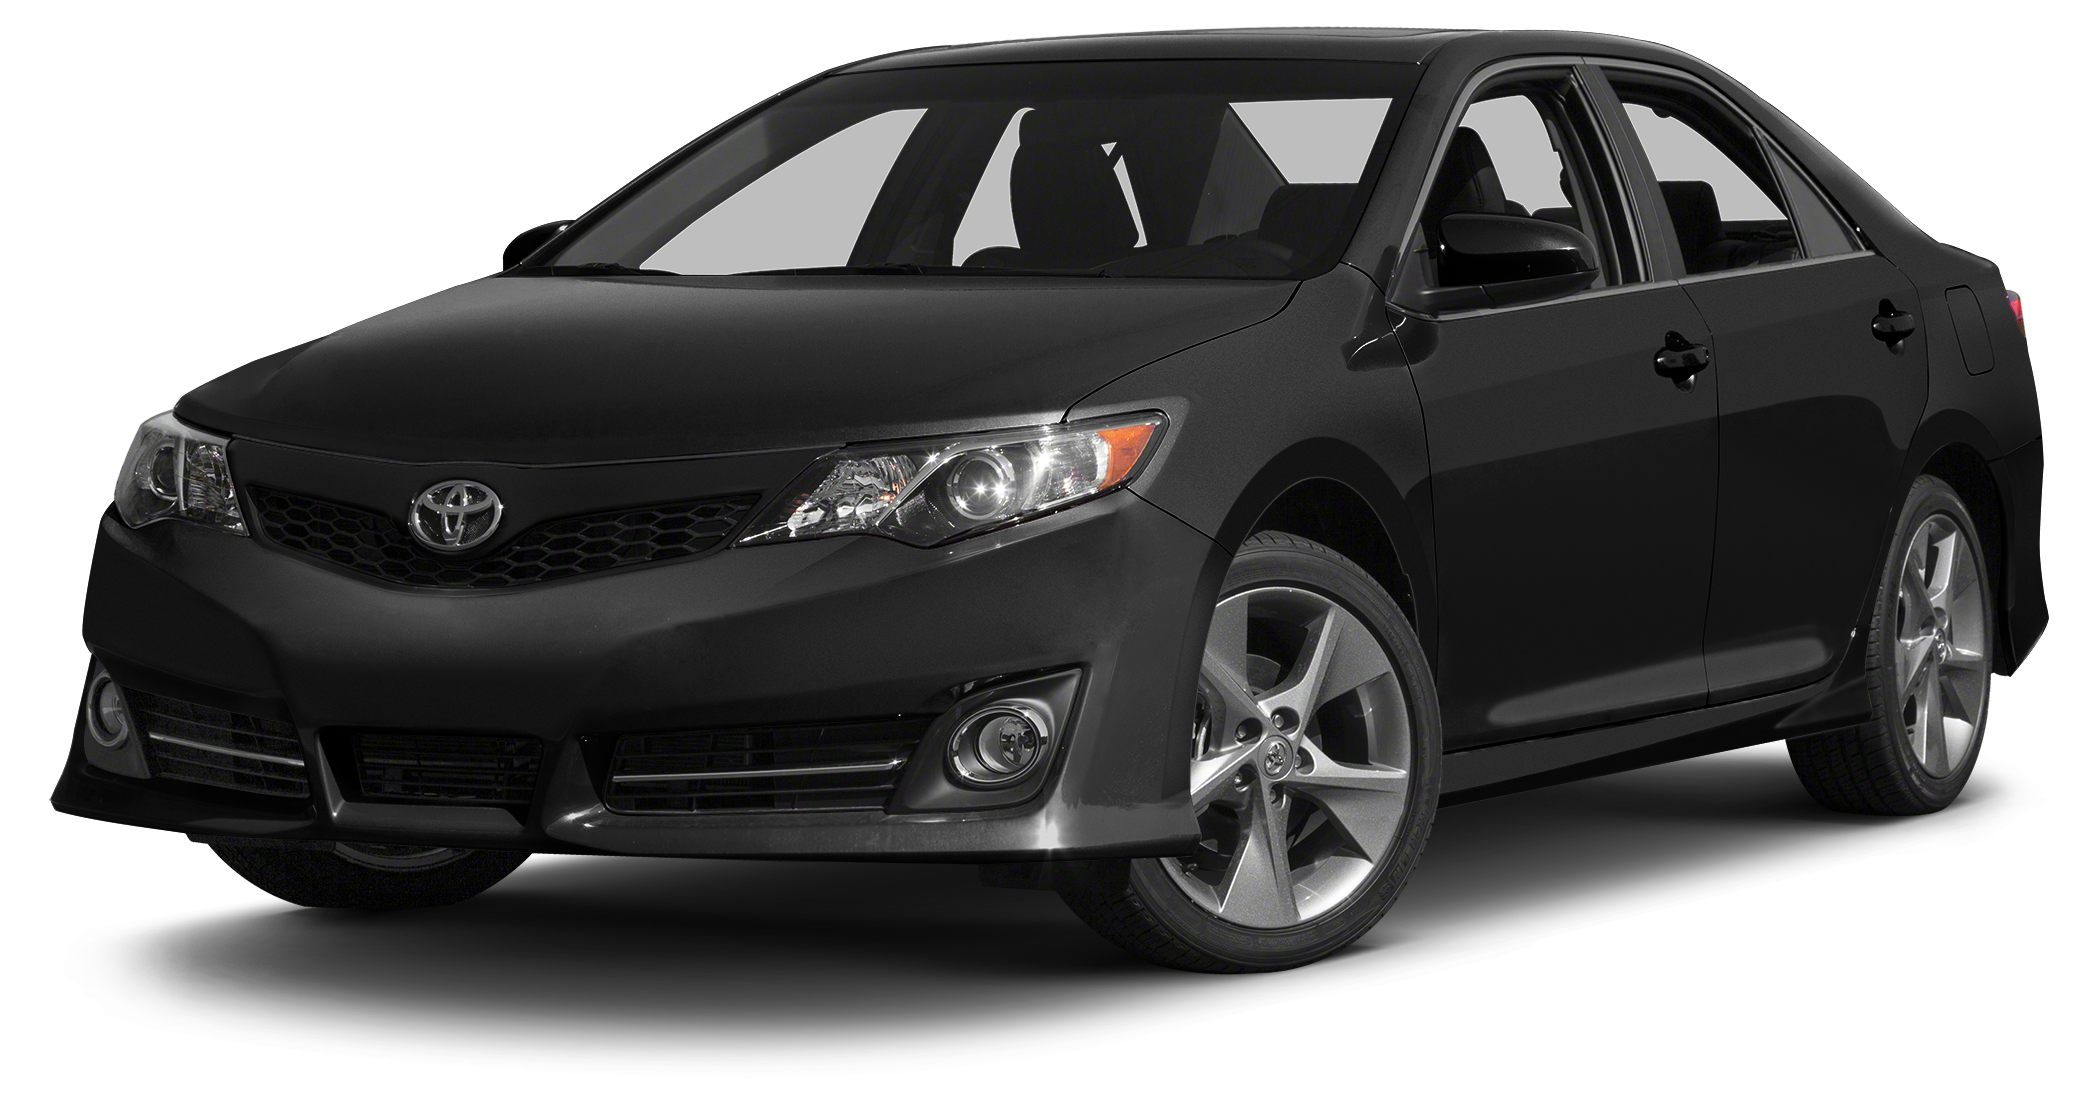 2014 Toyota Camry SE CARFAX 1-Owner EPA 35 MPG Hwy25 MPG City SE trim Bluetooth CD Player iPo